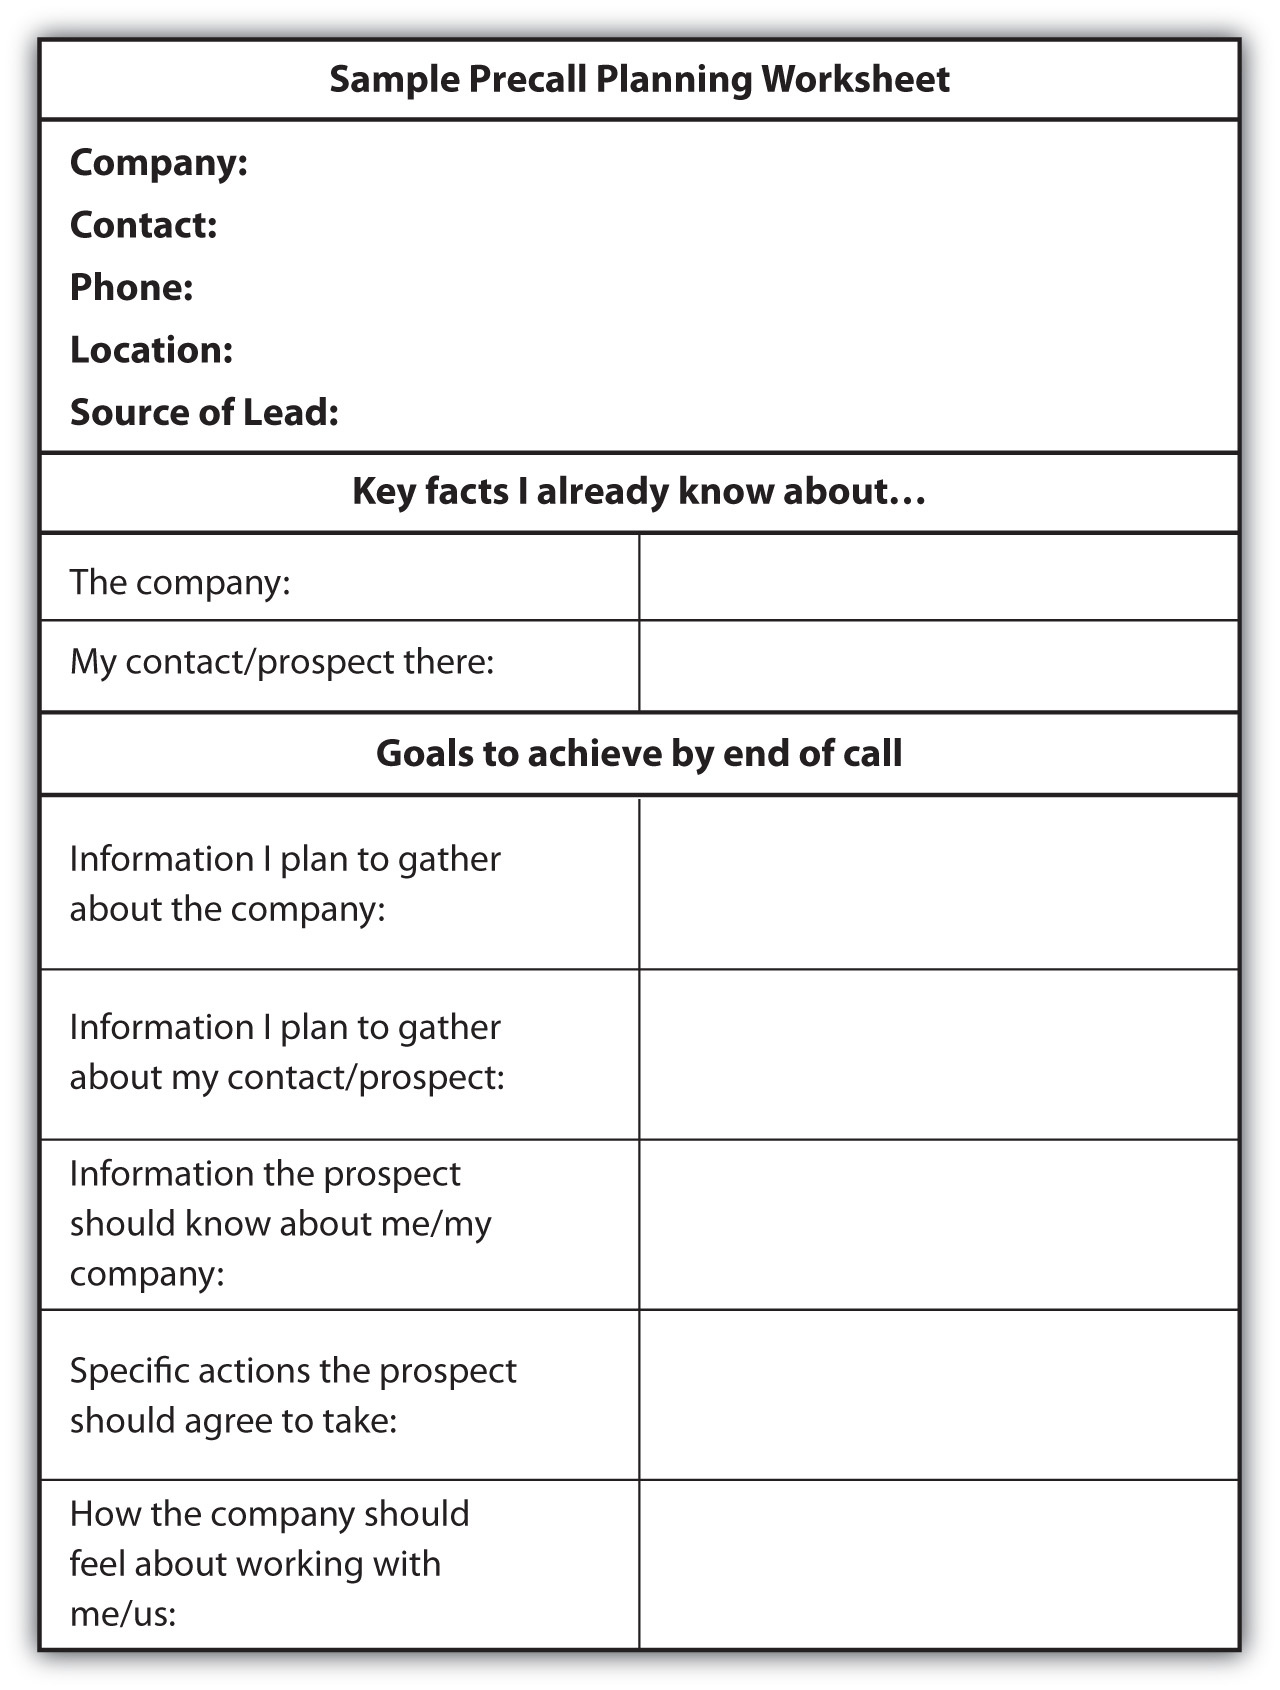 Worksheets Change Plan Worksheet the preapproach power of preparation figure 8 1 precall planning worksheet